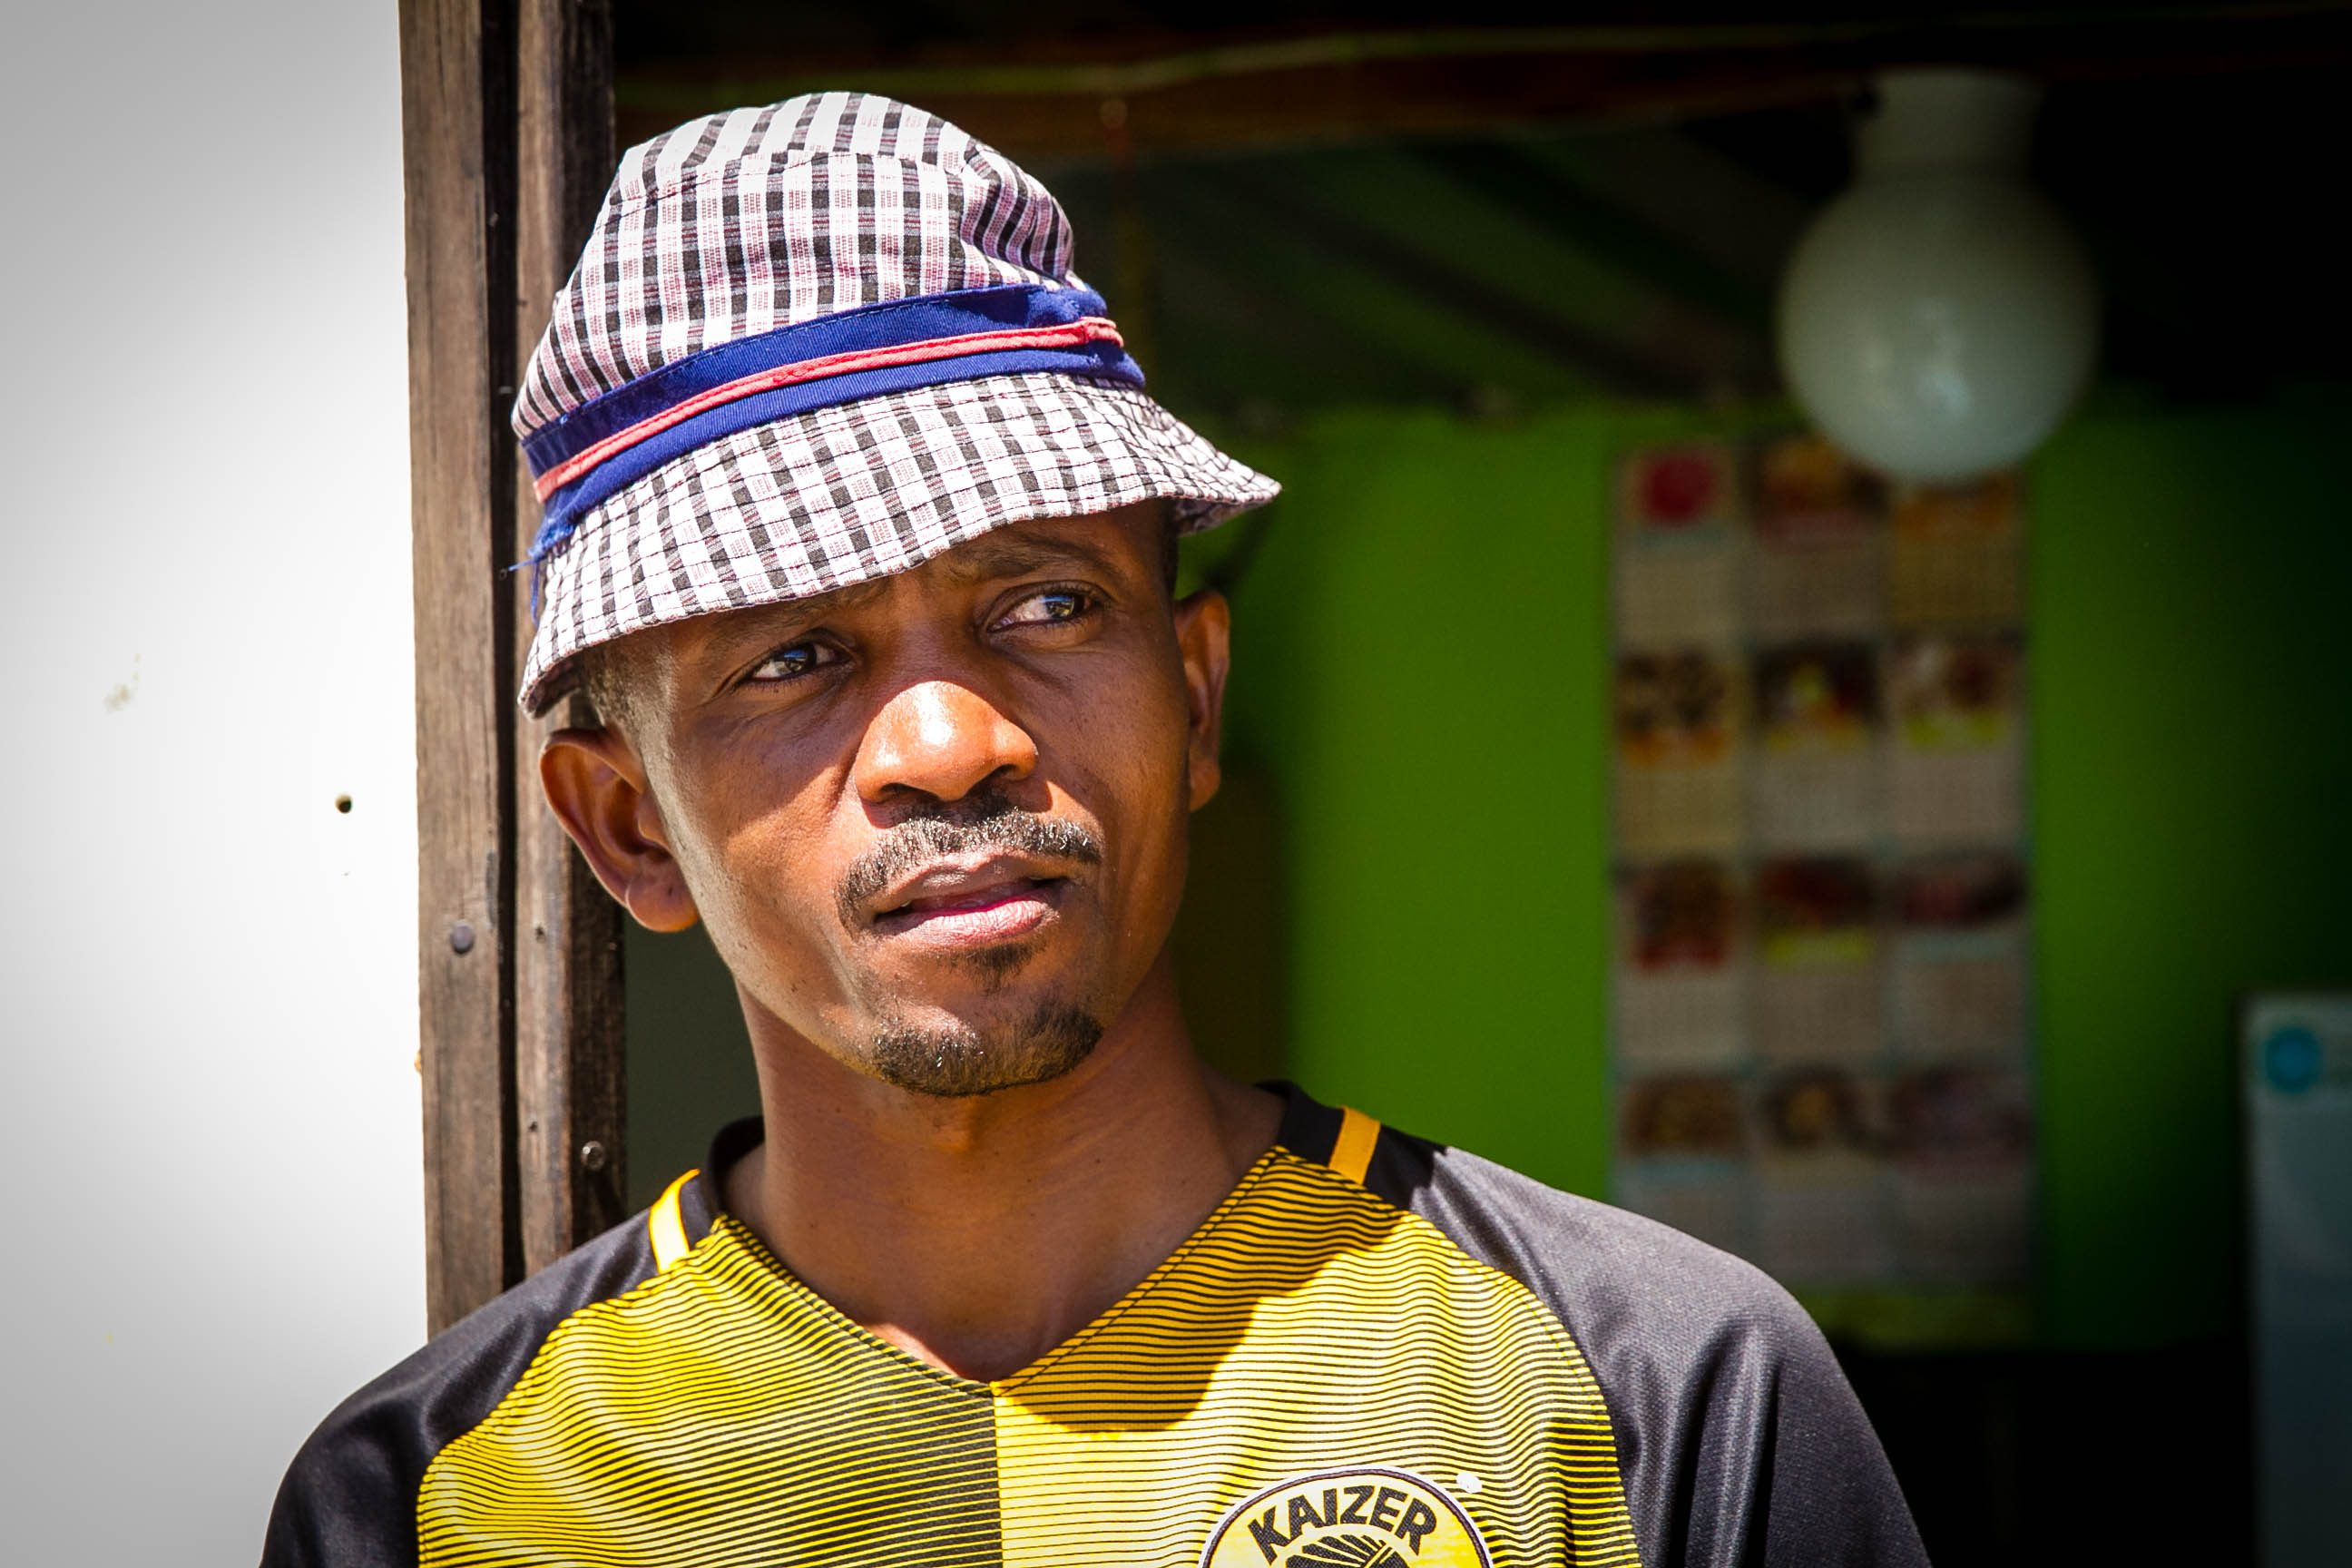 Sibusiso Nozigqwuebe, a security guard from Khayelitsha, is used to living with limited access to water. (Lily Martin/CBC)